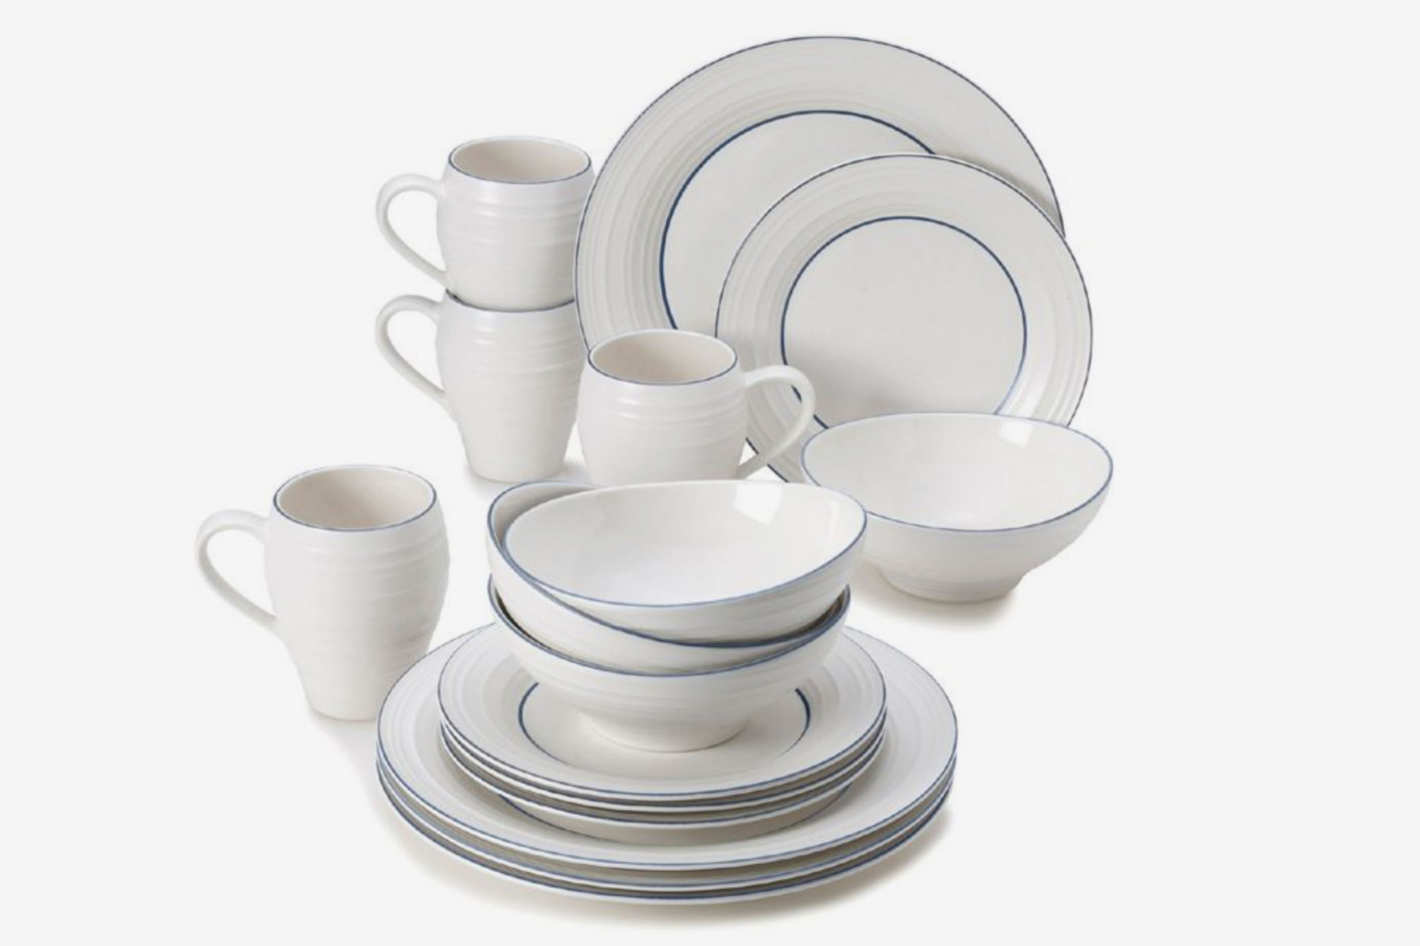 Mikasa Swirl Banded 16-Piece Dinnerware Set in Blue